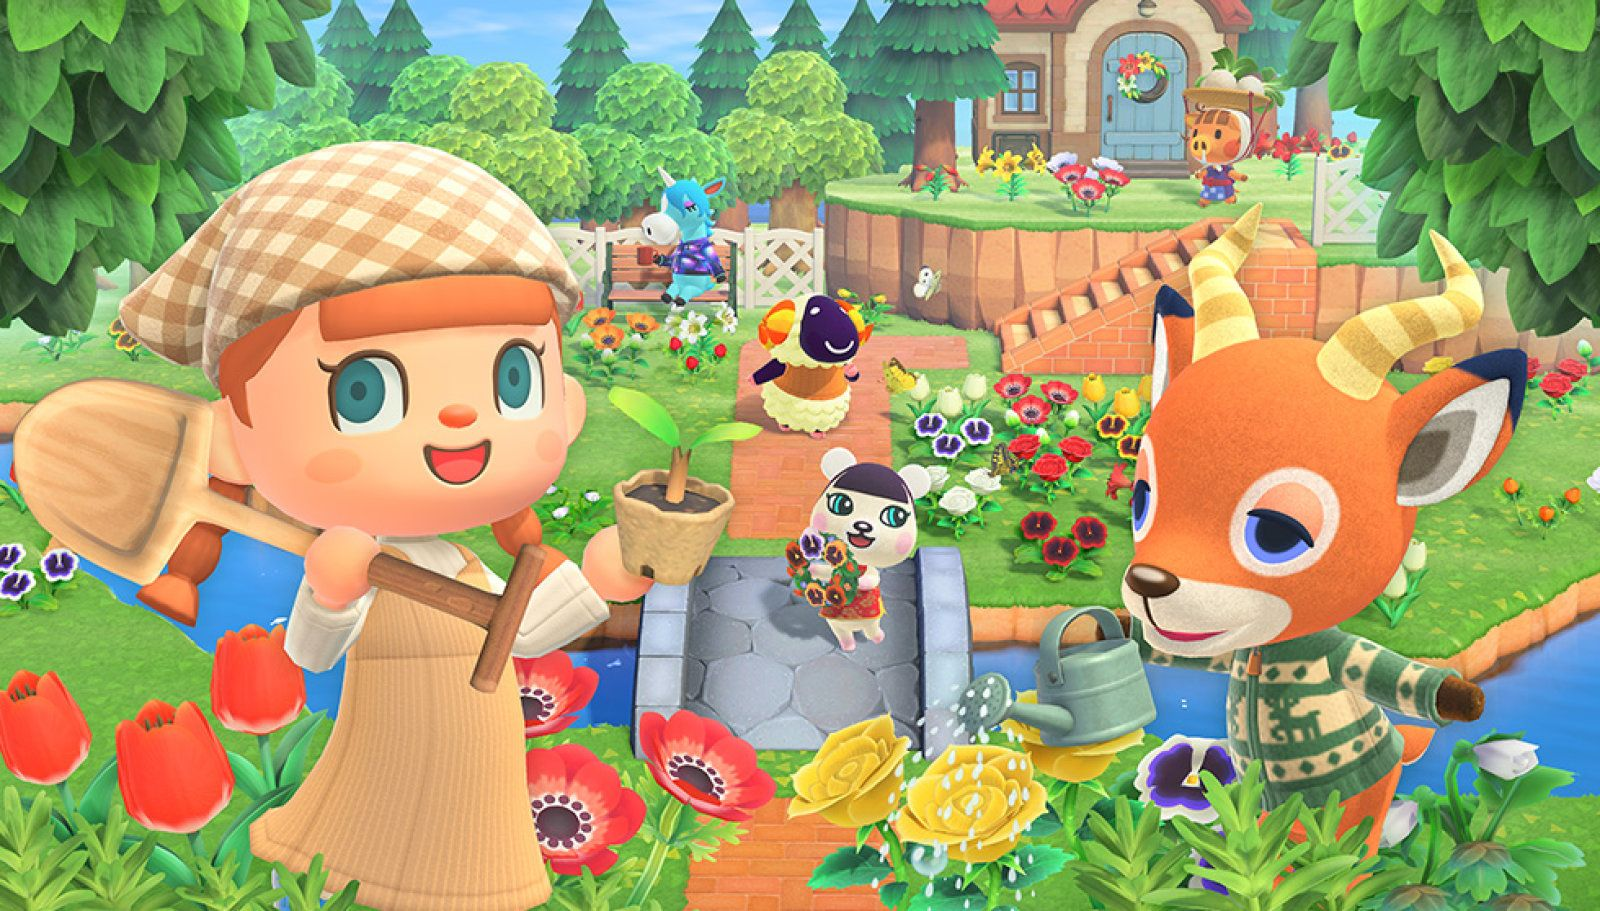 The best PC games that are like Animal Crossing | PC Gamer